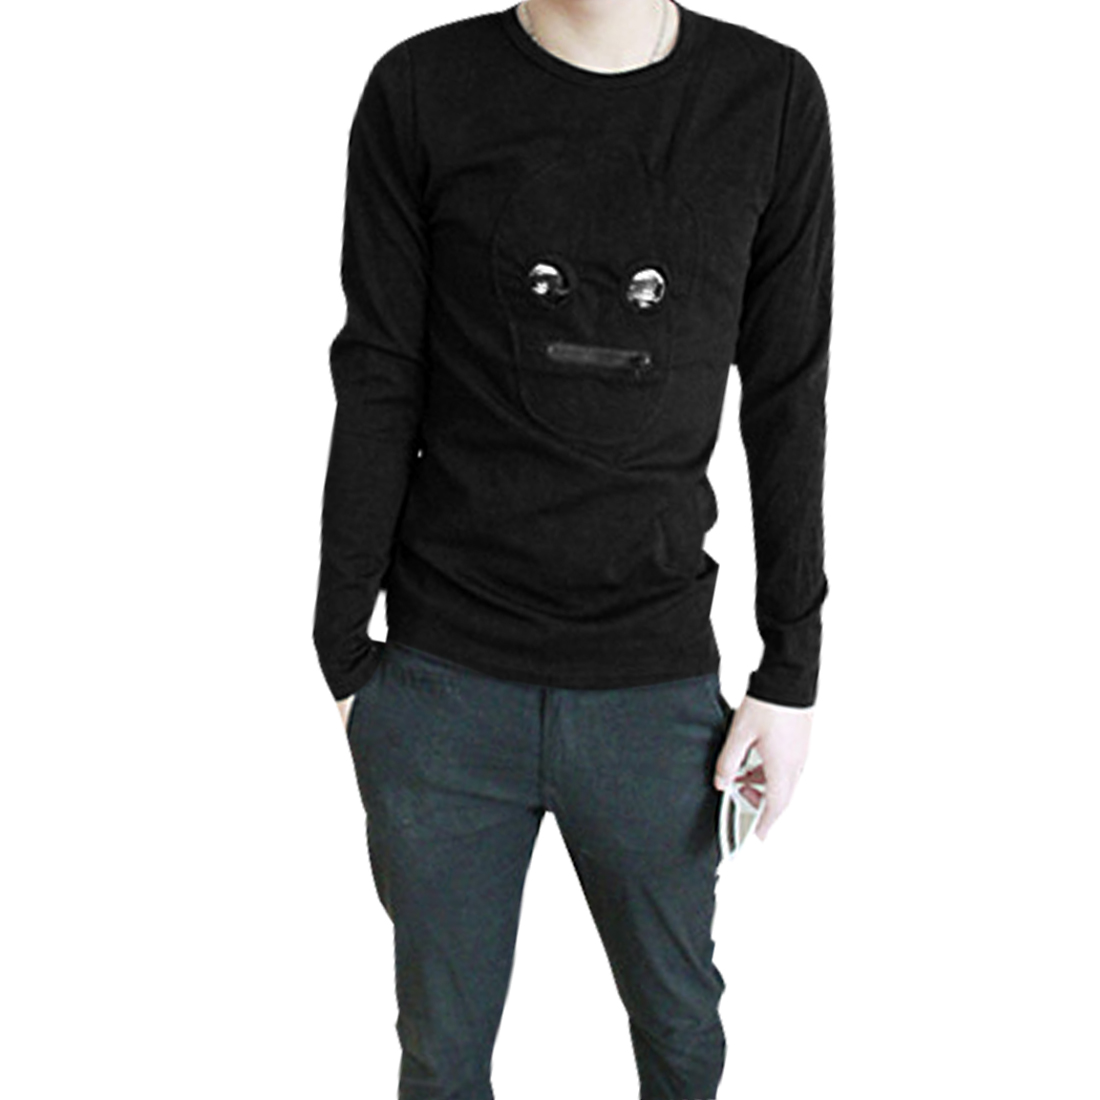 Men Black Fashion Long Sleeves Pullover Stretchy Casual Shirt S